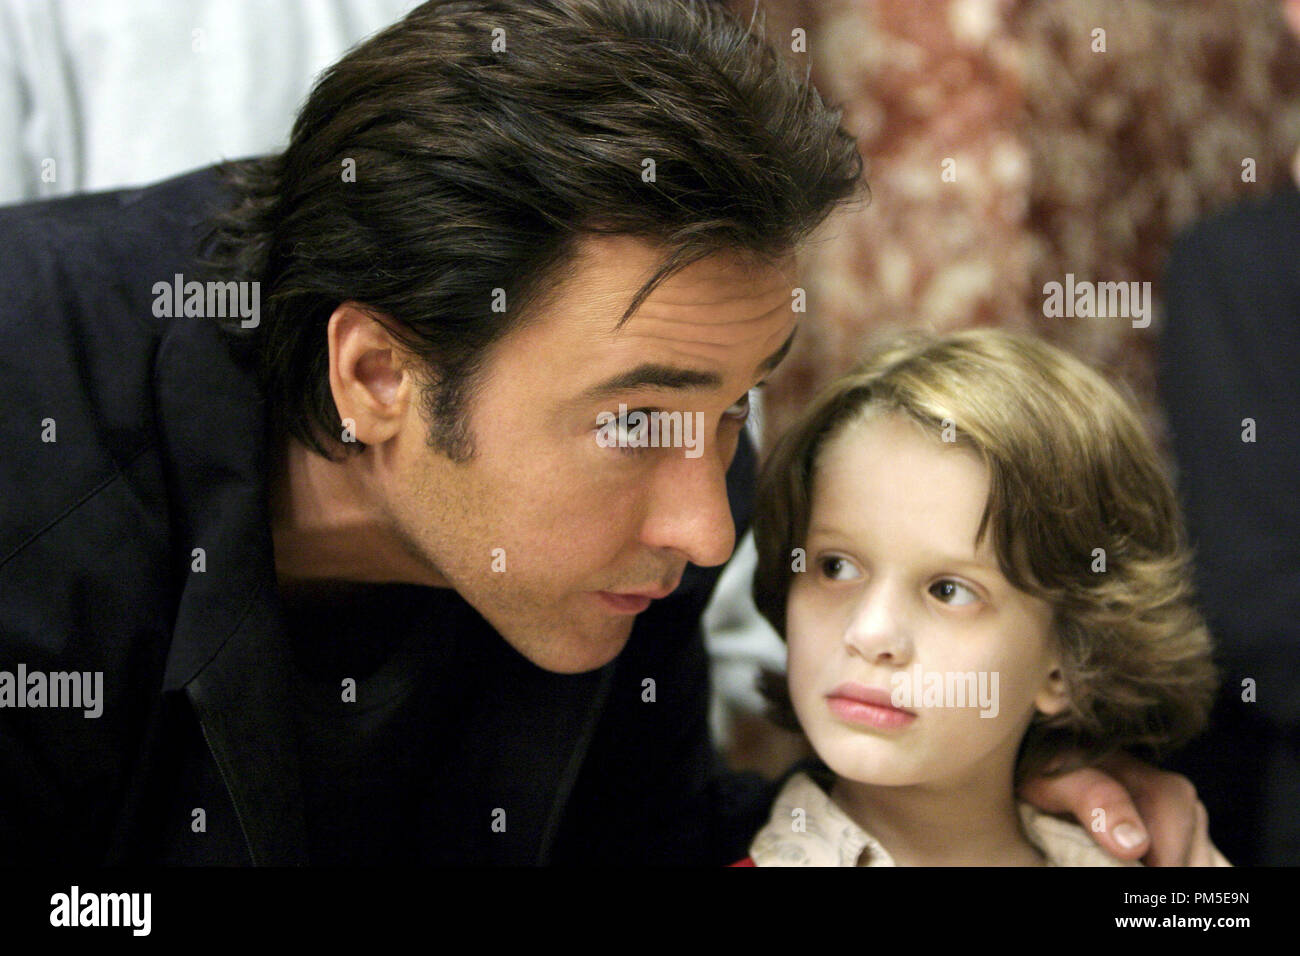 """Film Still / Publicity Still from """"The Martian Child"""" John Cusack, Bobby Coleman © 2006 New Line Cinema Photo Credit: Alan Markfield   File Reference # 30736841THA  For Editorial Use Only -  All Rights Reserved Stock Photo"""